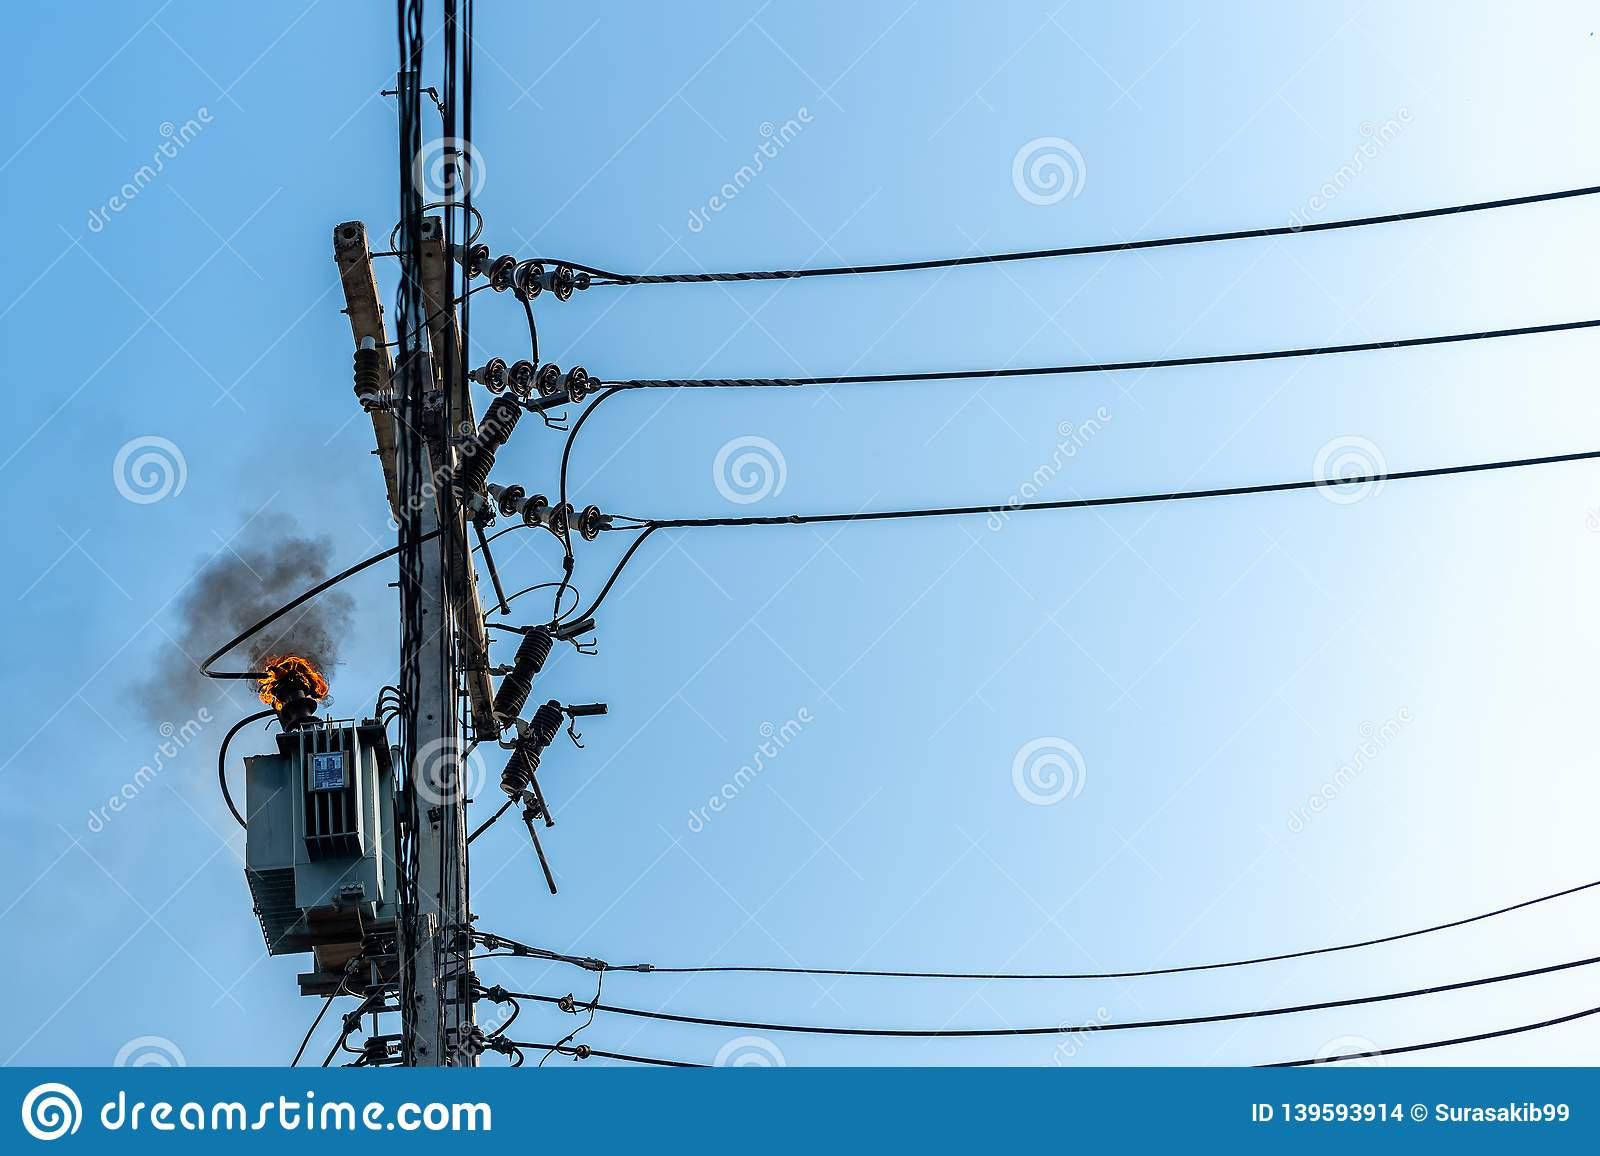 hight resolution of power pylon overload or electric short circuit at transformer on poles and fire or flame with